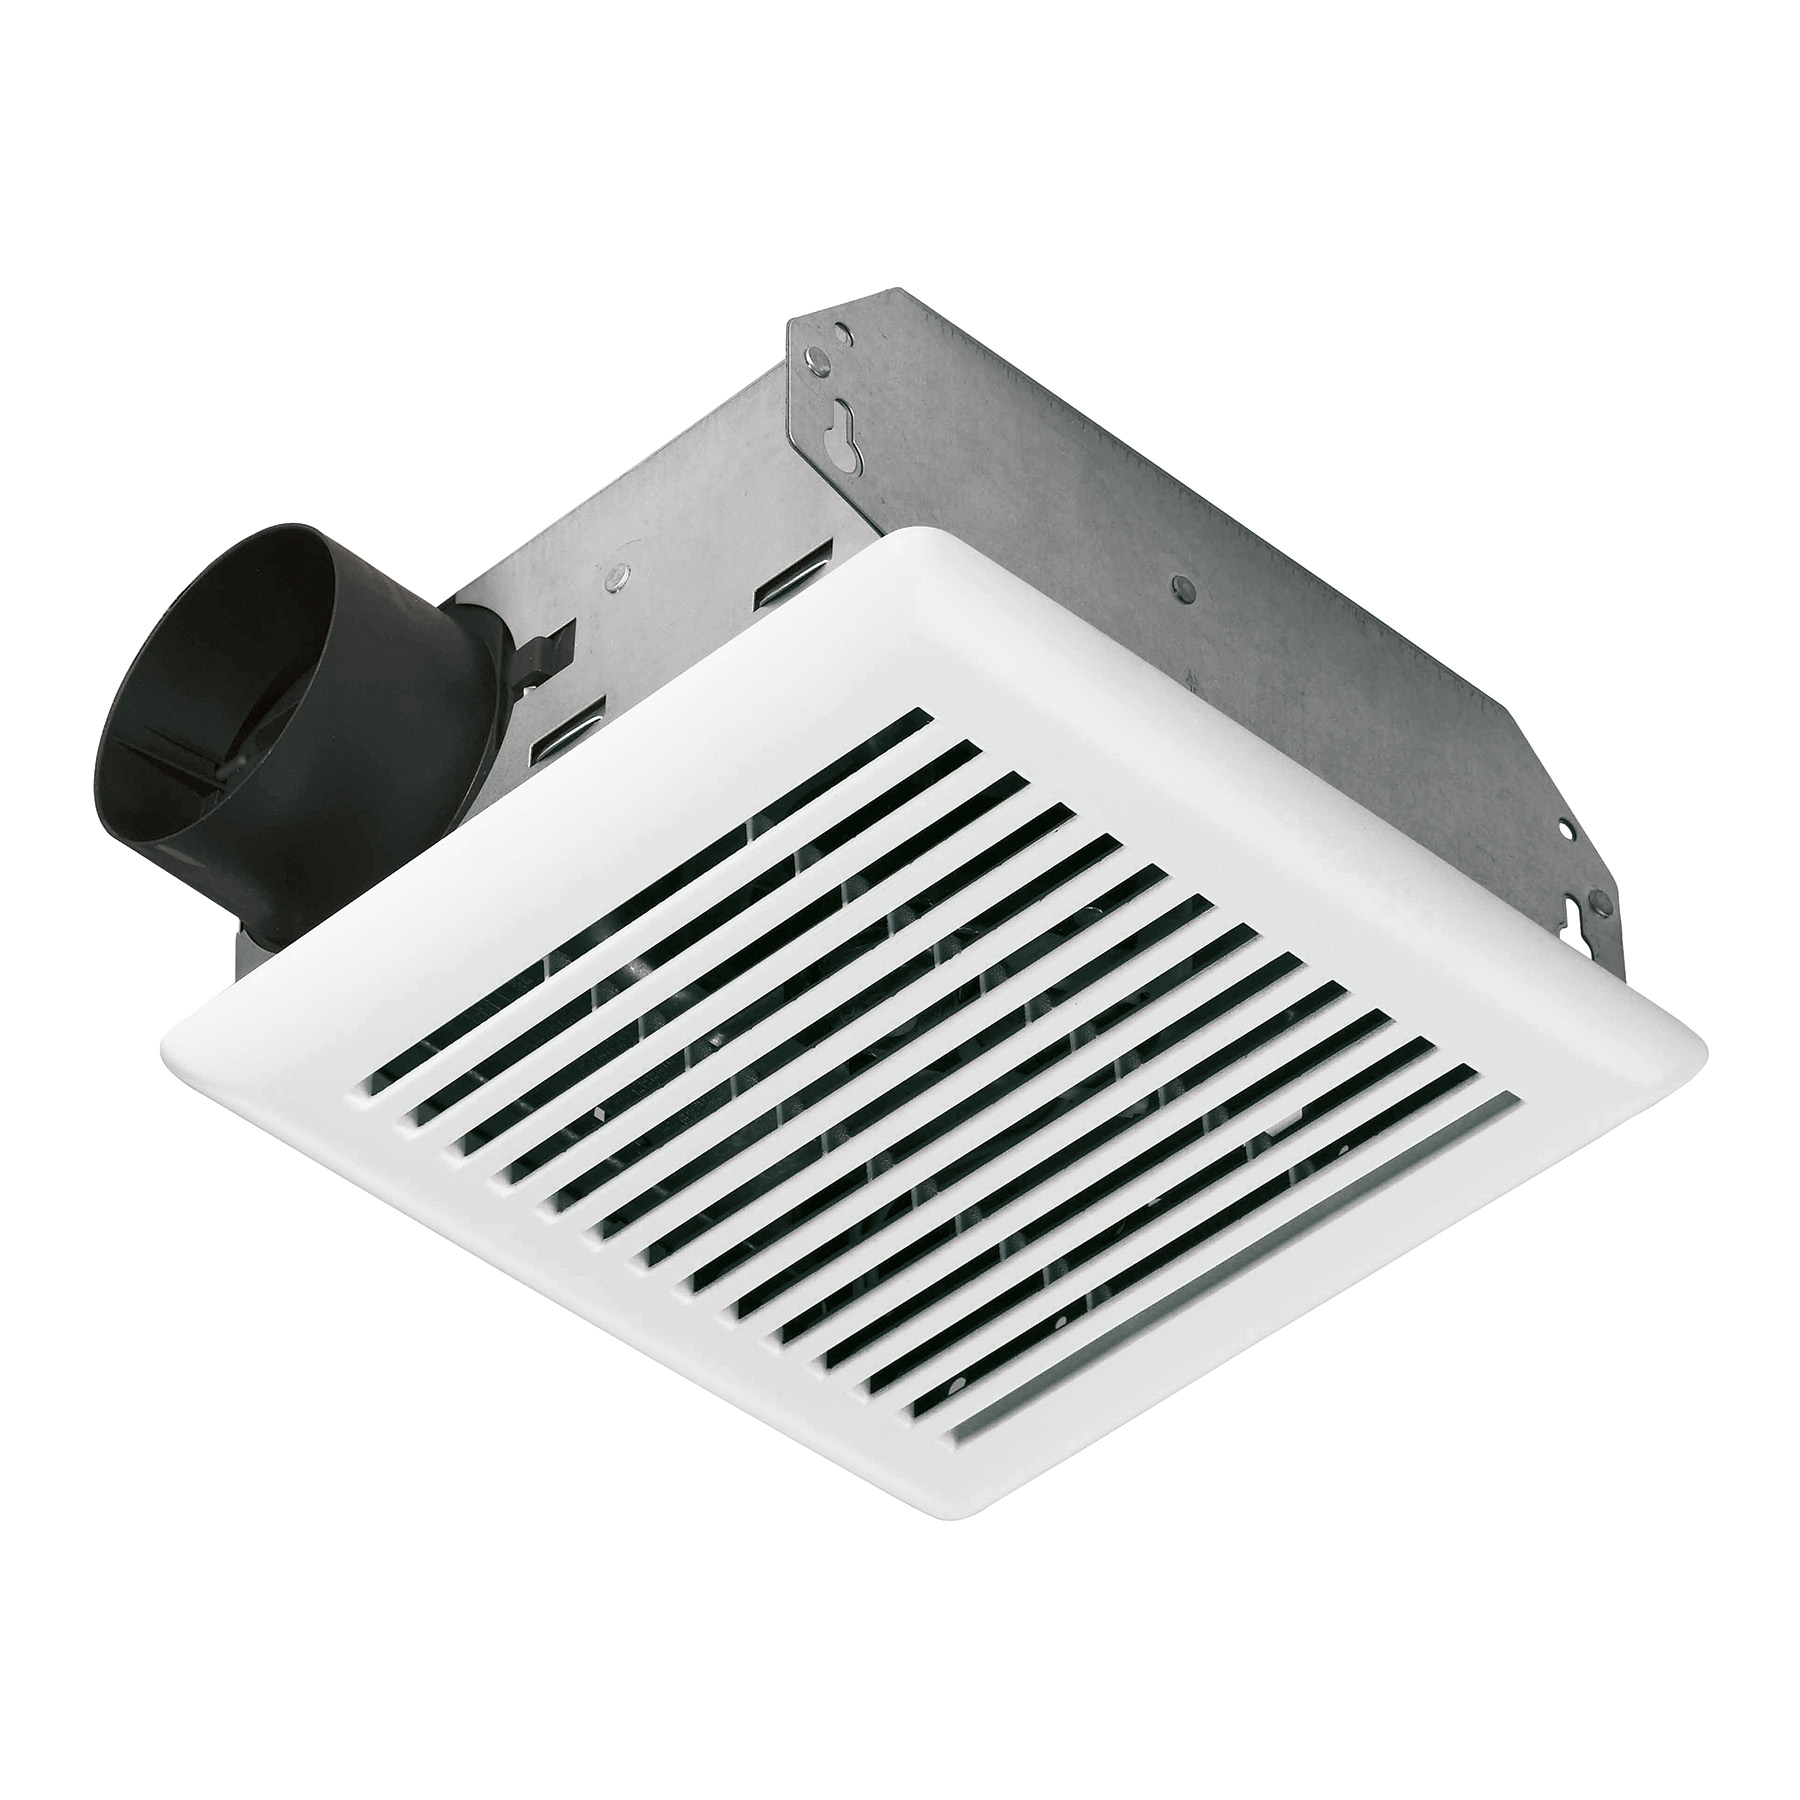 "NuTone® 70 CFM Ventilation Fan, 6.0 Sones, 4"" Duct"